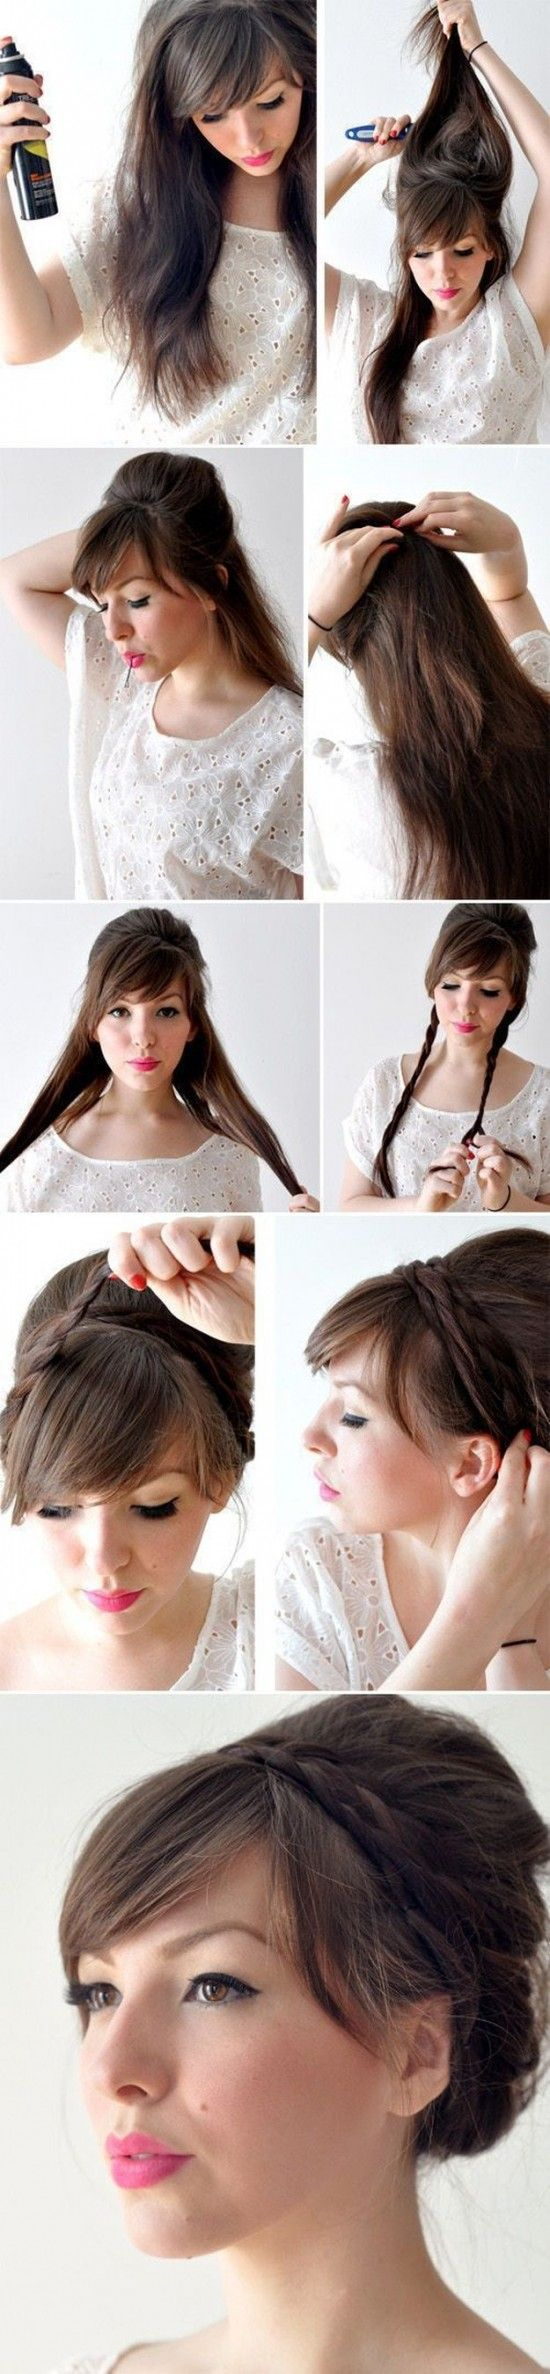 Creative-Hairstyles-That-You-Can-Easily-Do-at-Home-011